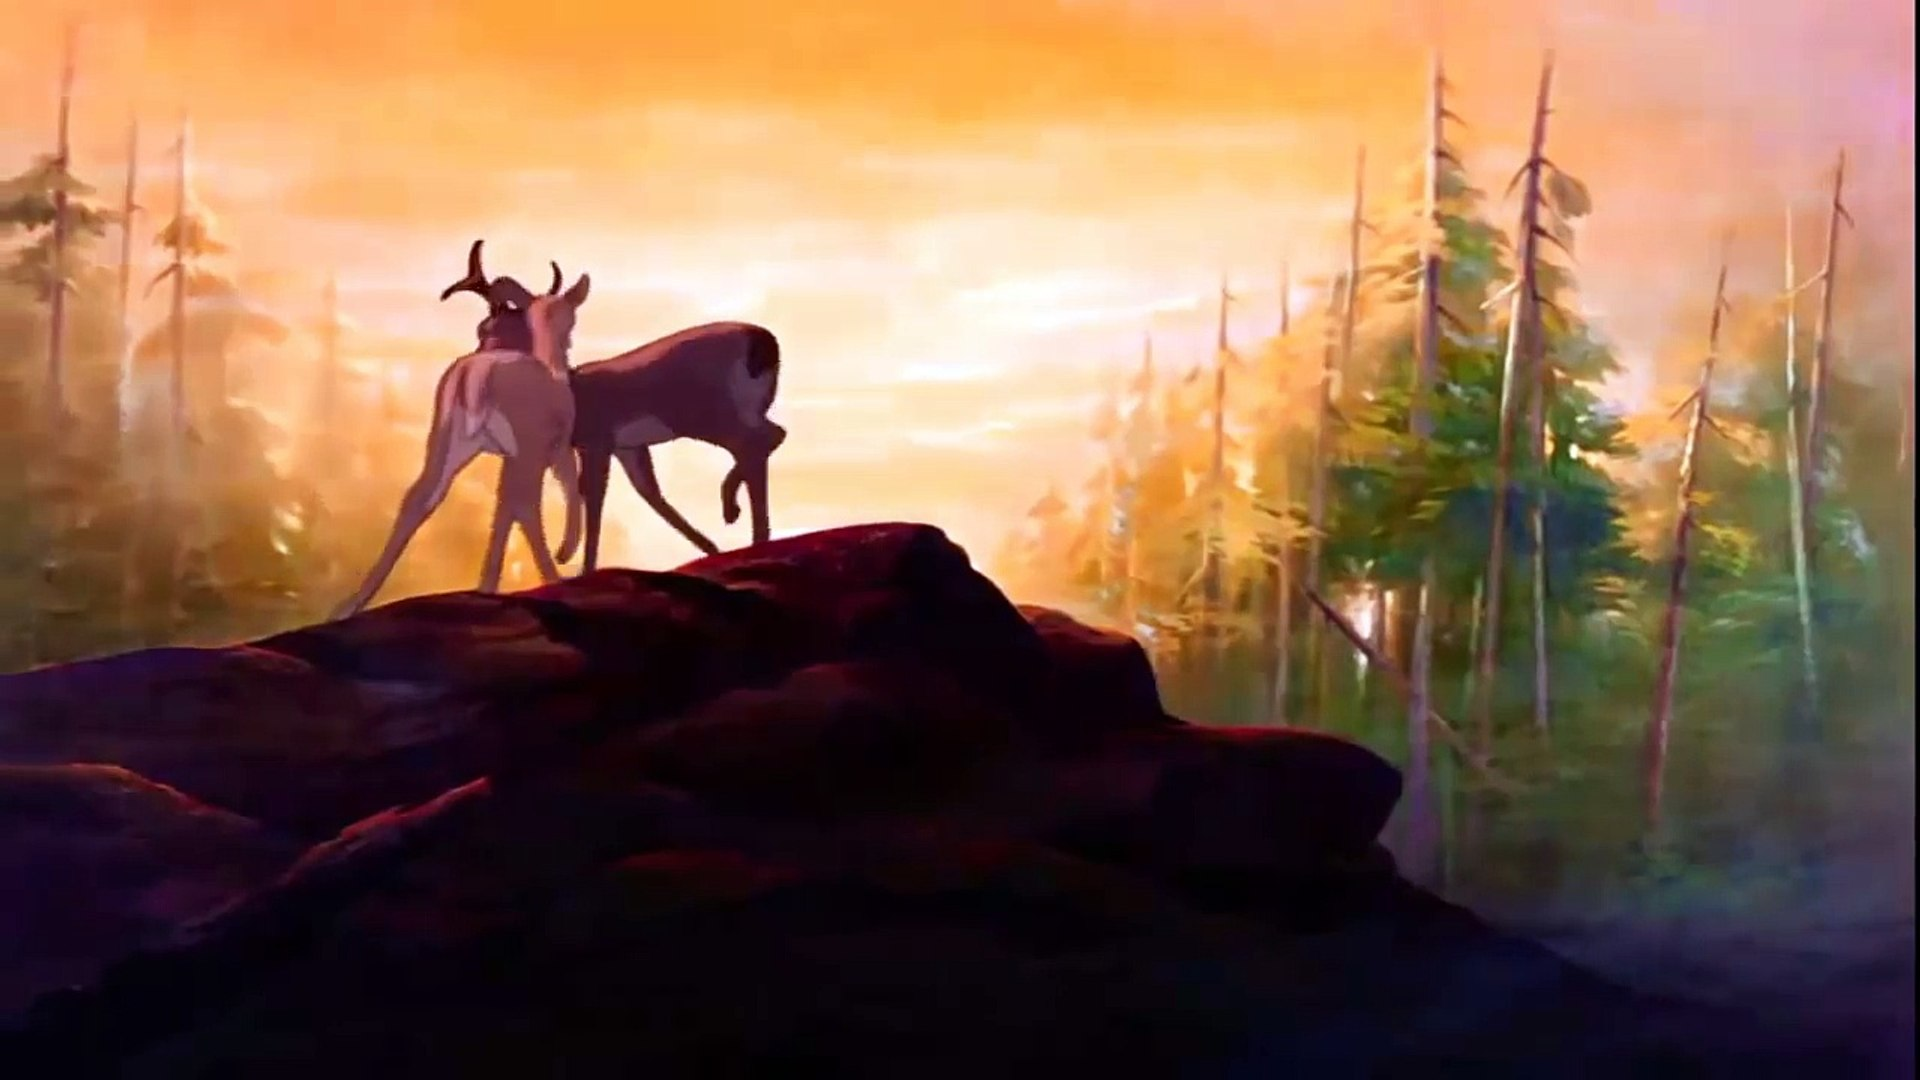 Bambi - Looking for Romance ( I Bring You a Song ) HD